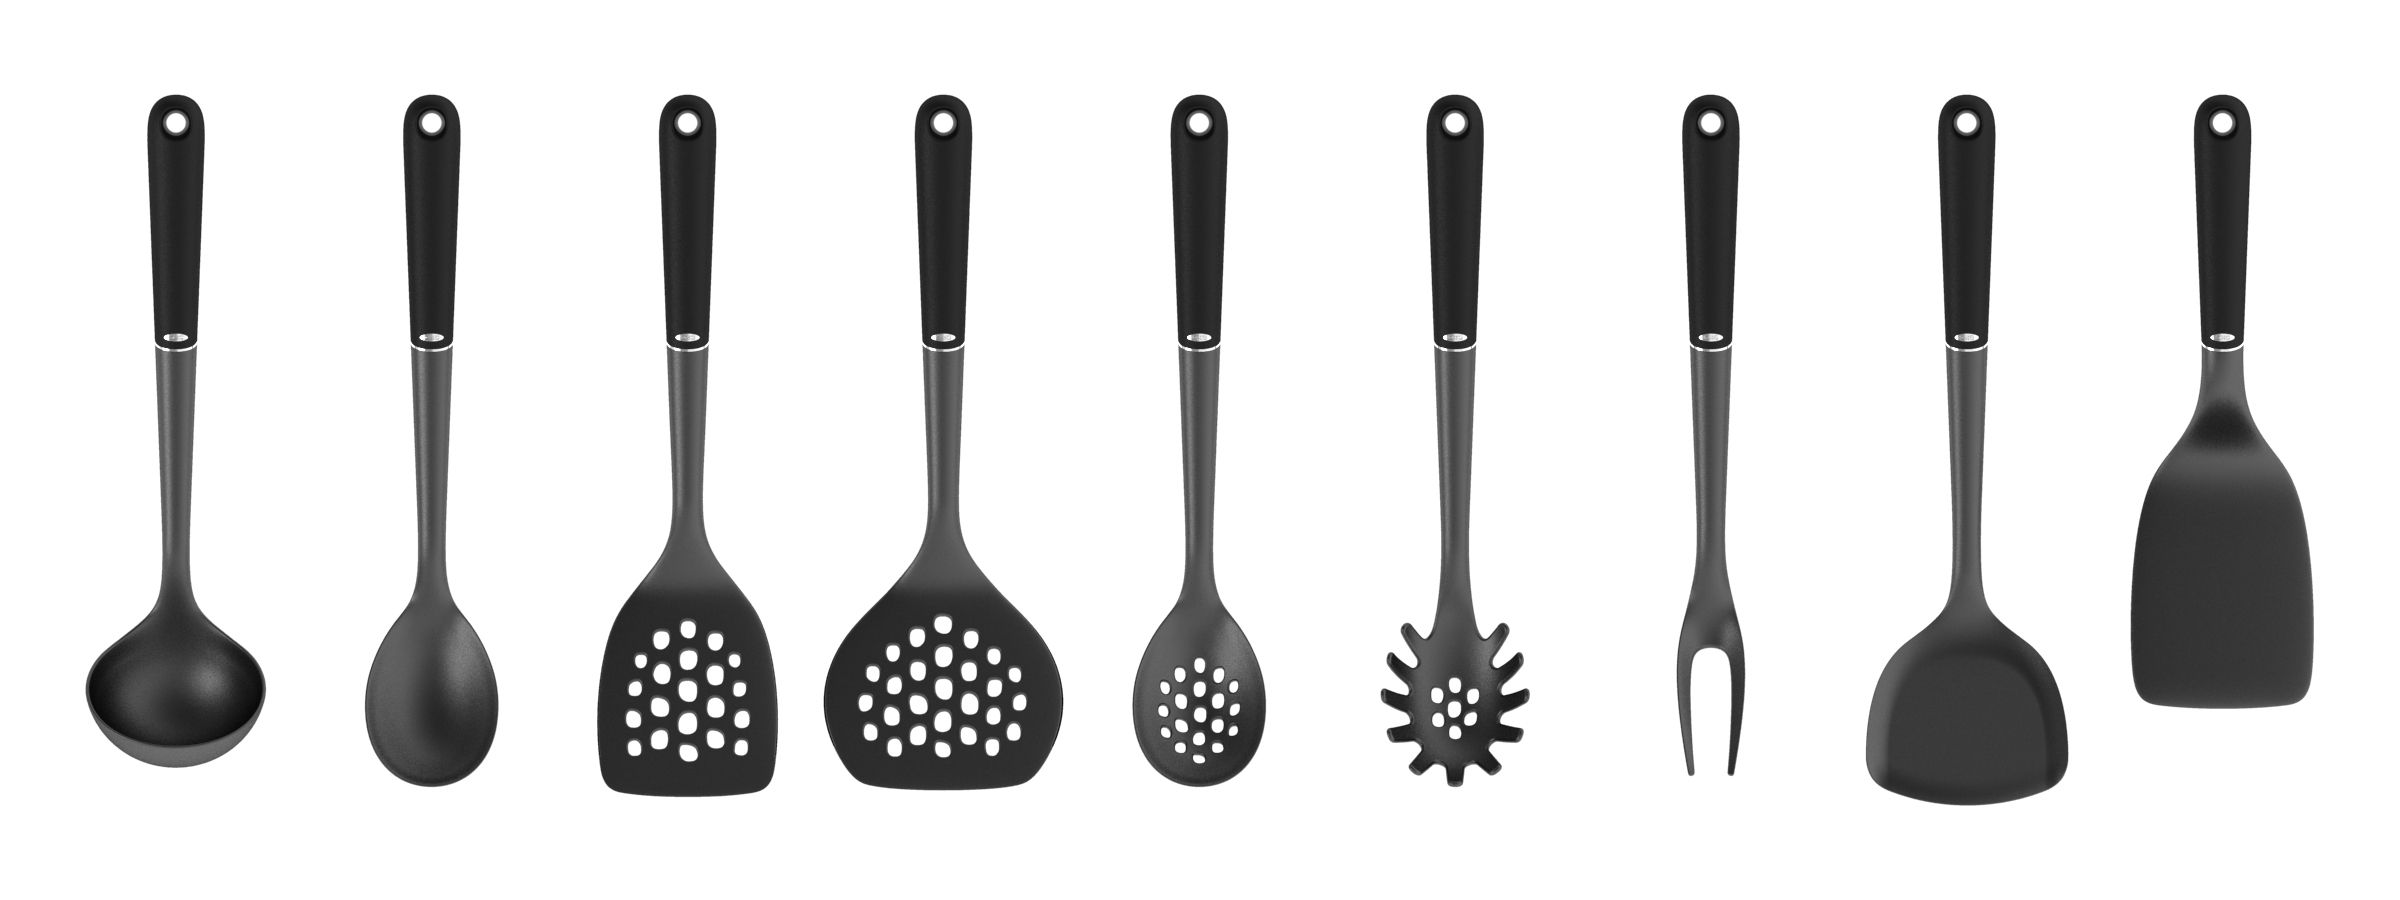 oxo kitchen tool set blogs workanyware co uk u2022 rh blogs workanyware co uk Modern Kitchen Tools OXO Kitchen Gadgets